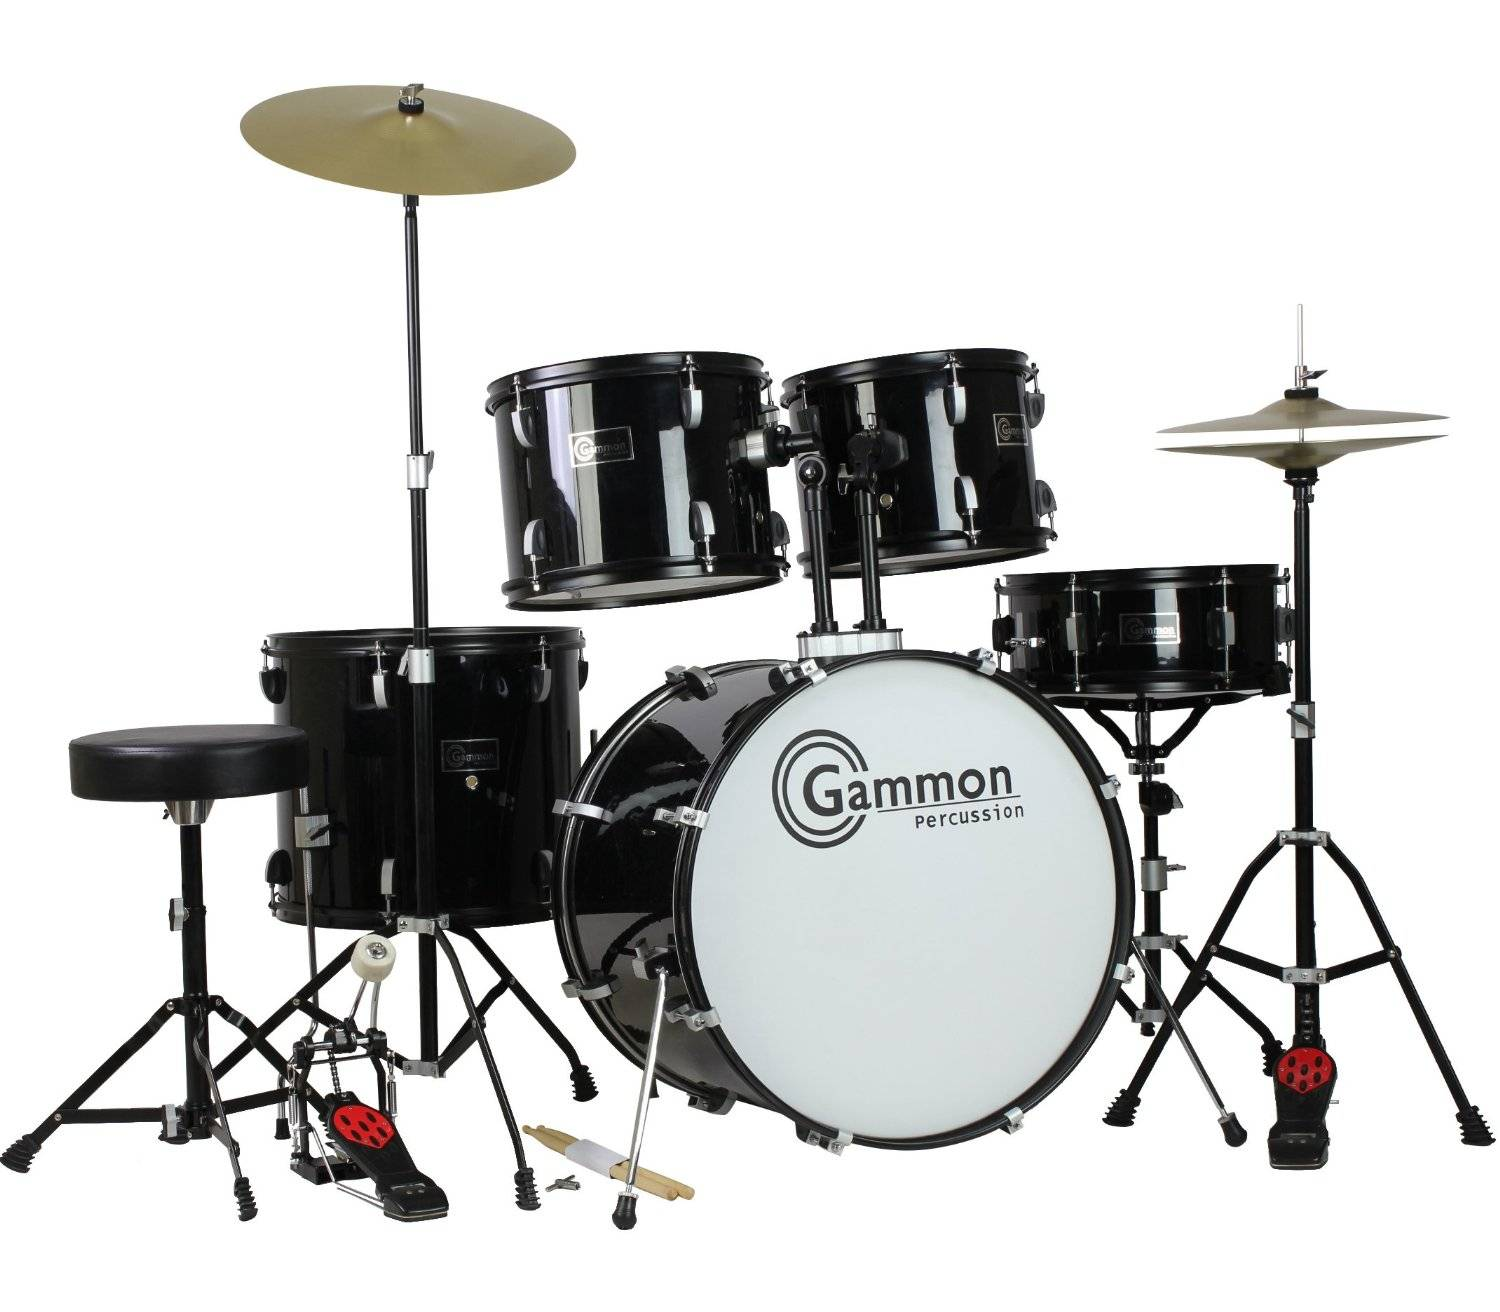 Gammon full size drum set